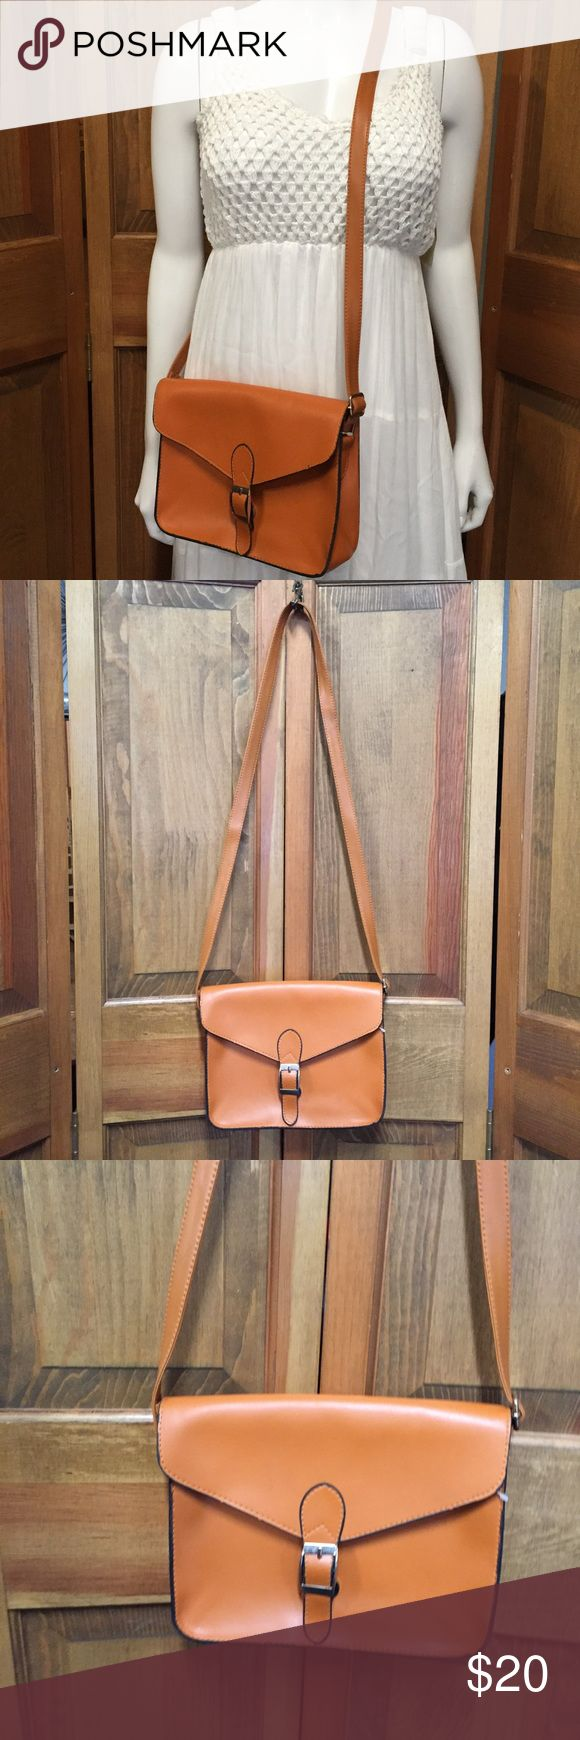 """Faux Leather Crossbody Purse Brown / Rust Shows normal wear with no damage and adjustable strap - 22.5"""" X 9.5"""" X 8.35"""" with a 20.75"""" strap drop  This item was listed on: 8/10/17  💛Like this item for pricing updates    💛Items ship out ASAP (usually 1 business day)   💛Questions / Measurements asked after 6pm Or on Sunday will be delayed but feel free to ask!   💛Save 15% by purchasing more than one item! Bags Crossbody Bags"""